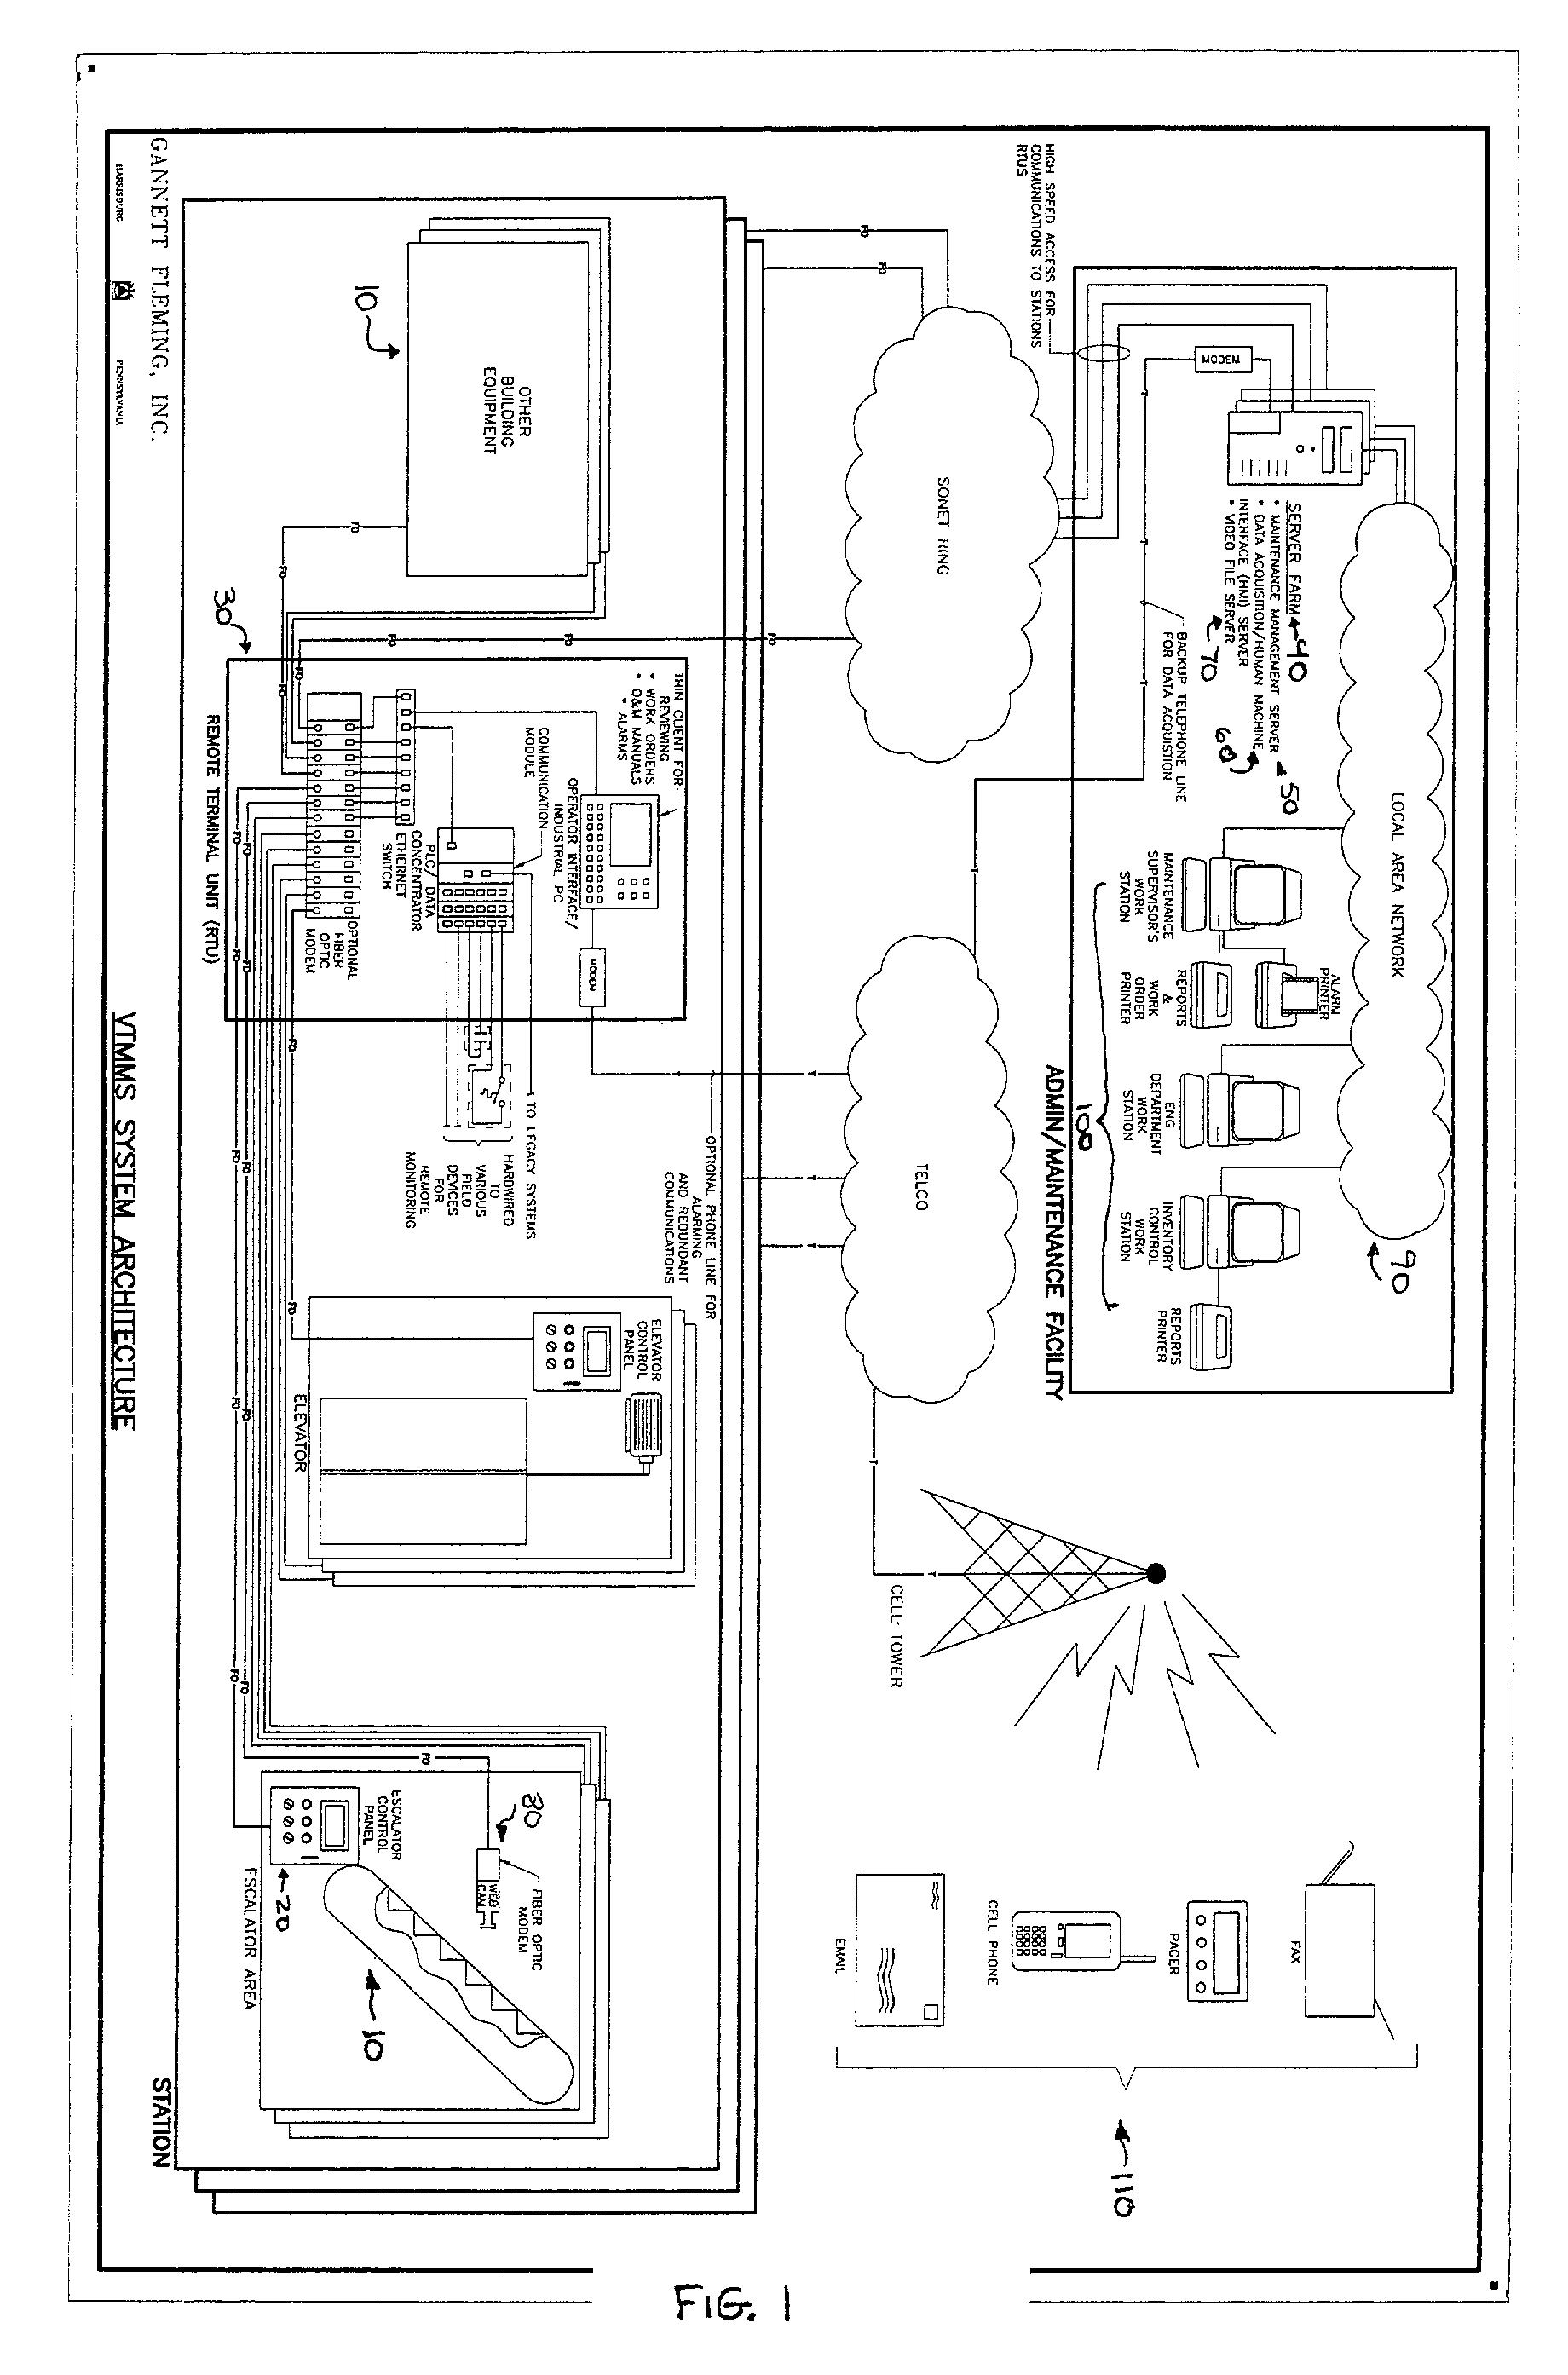 Patent Us7002462 System And Method For Remote Monitoring Escalator Schematic Drawing